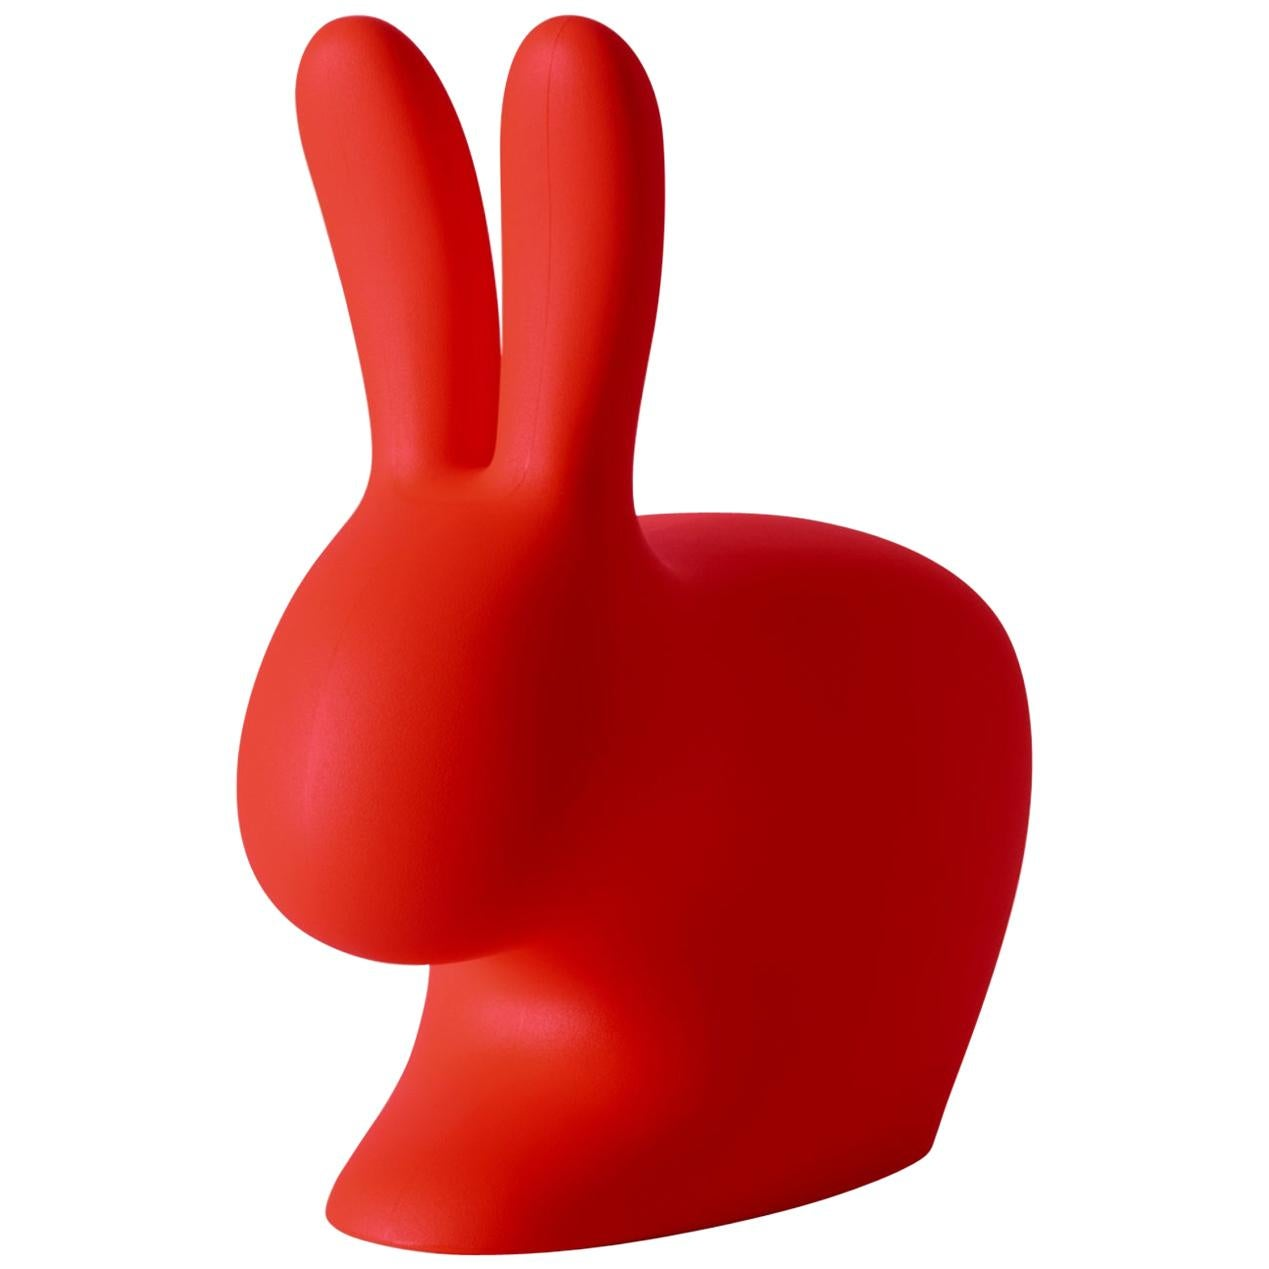 In Stock in Los Angeles, Red Baby Rabbit Chair by Stefano Giovannoni